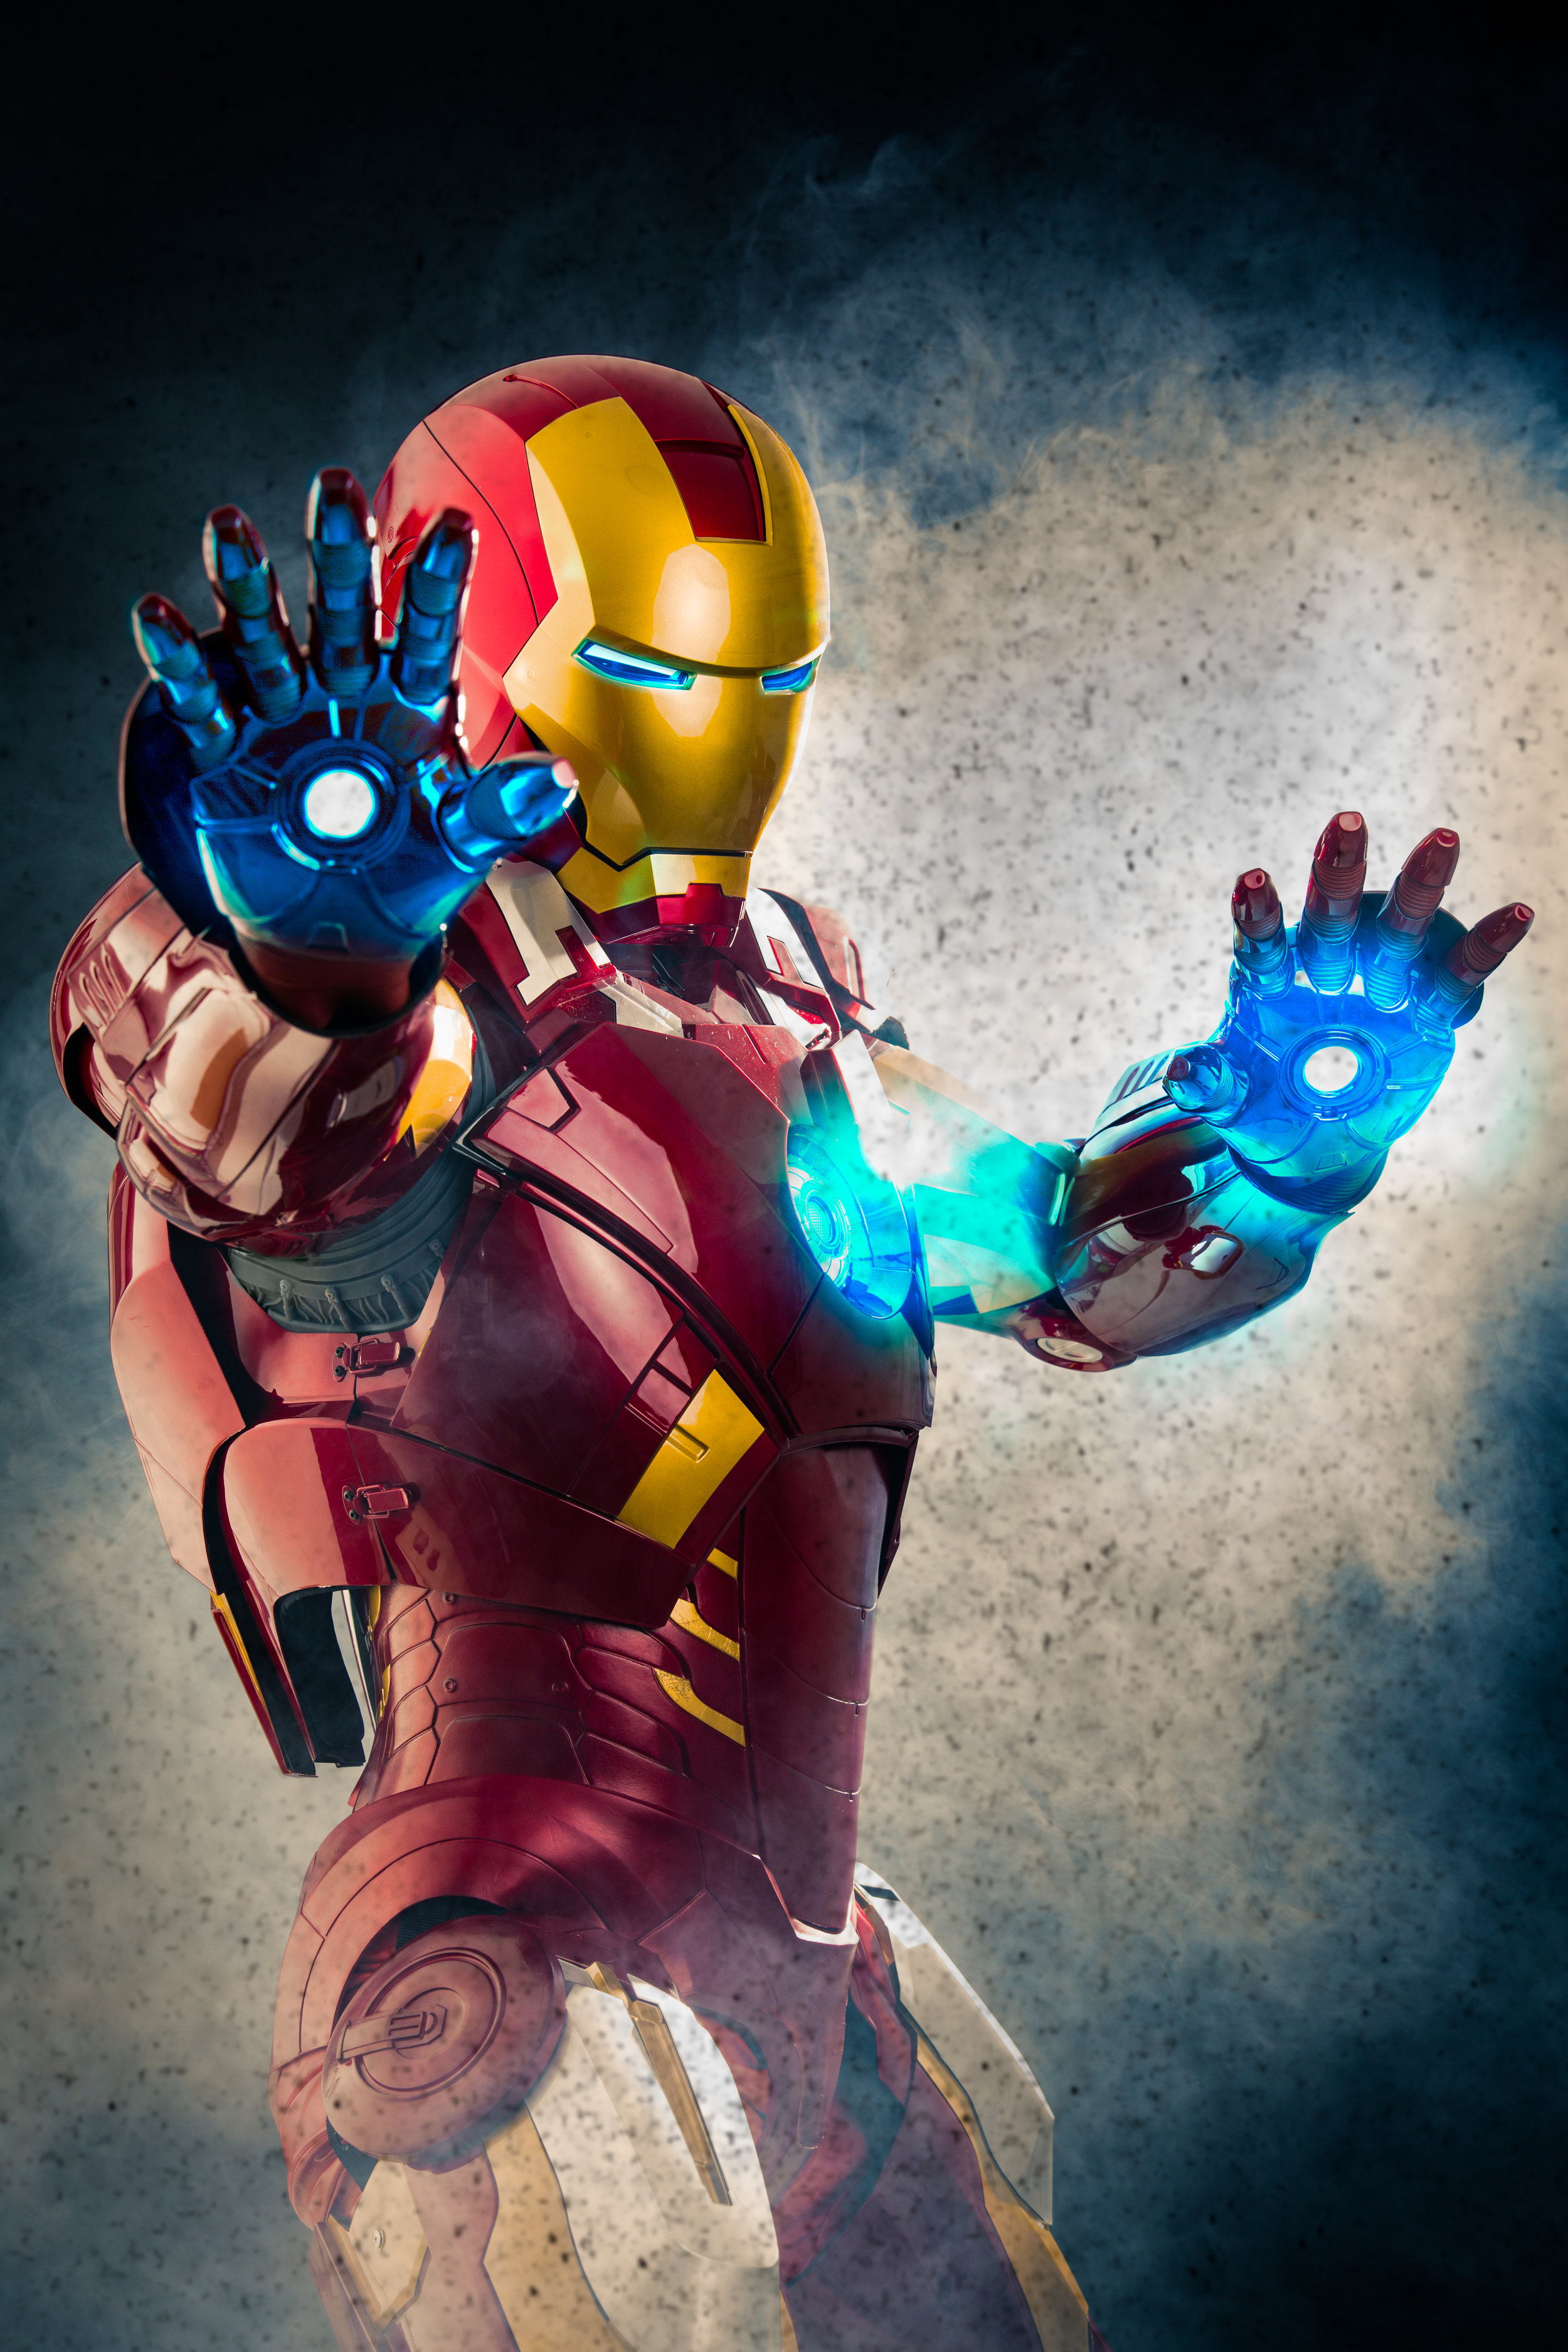 The final image of Iron Man, captured at ELM Photo Studio